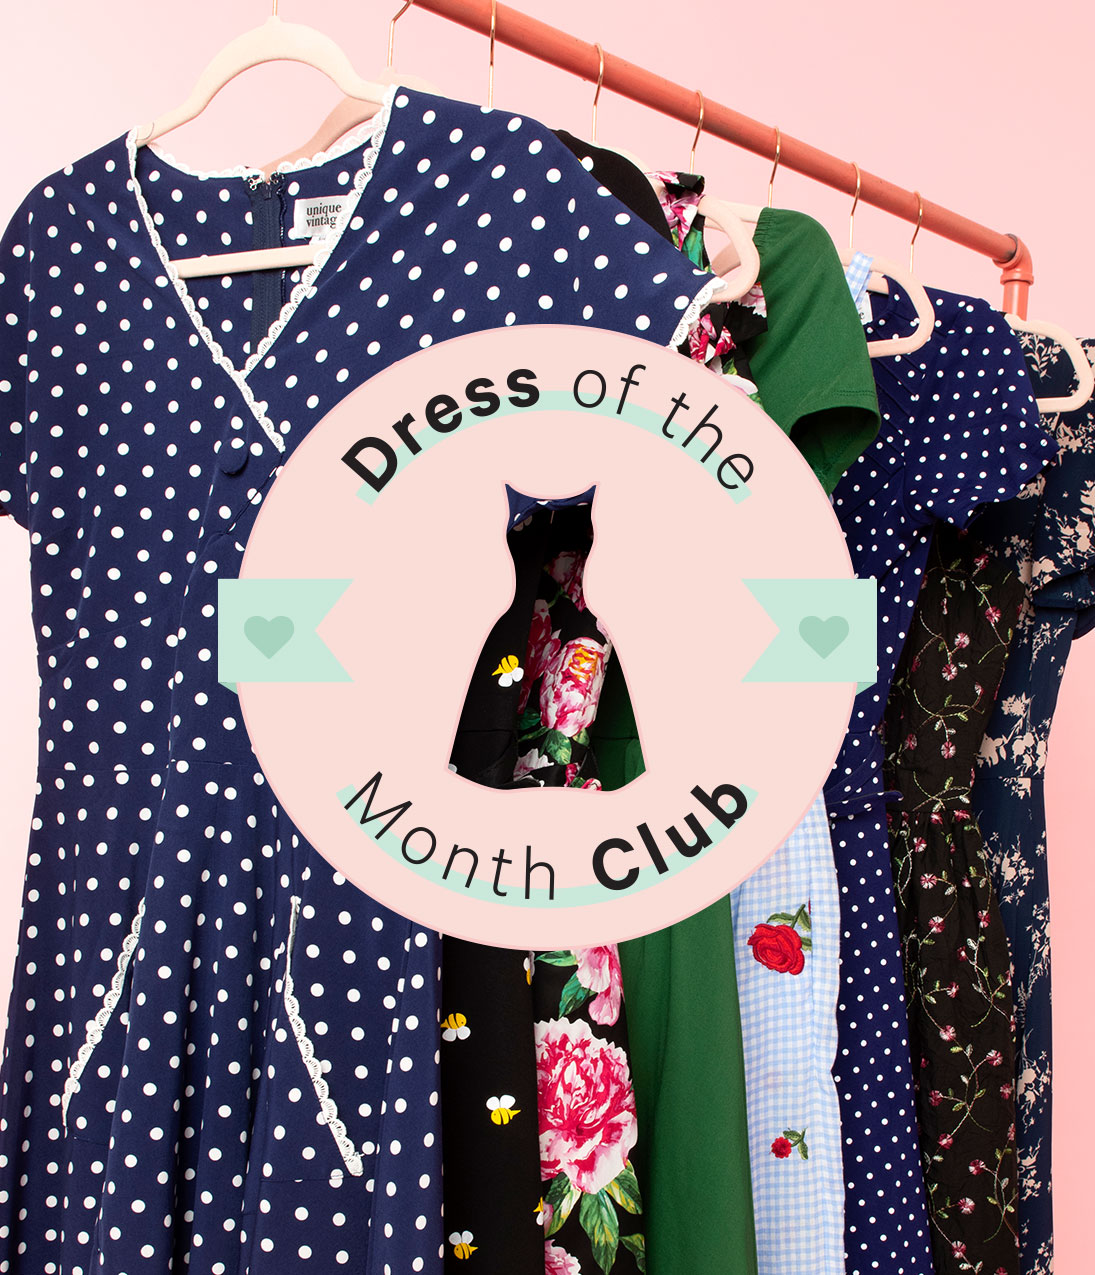 Dress of the Month Club Membership